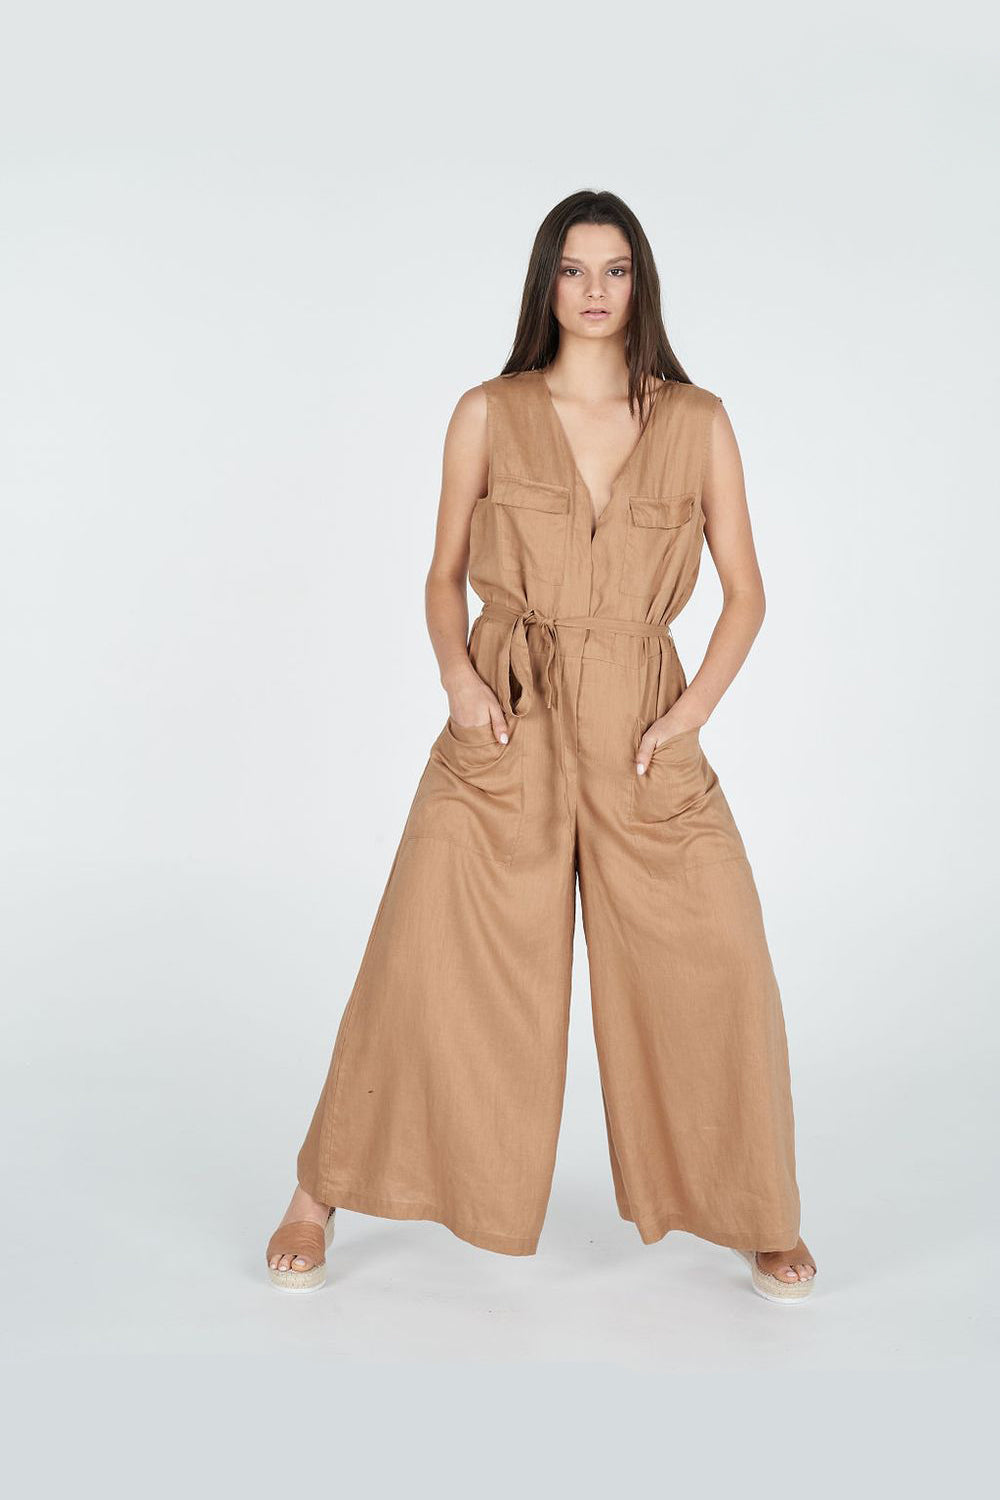 ZOE KRATZMANN - Rouse Jumpsuit online at PAYA boutique